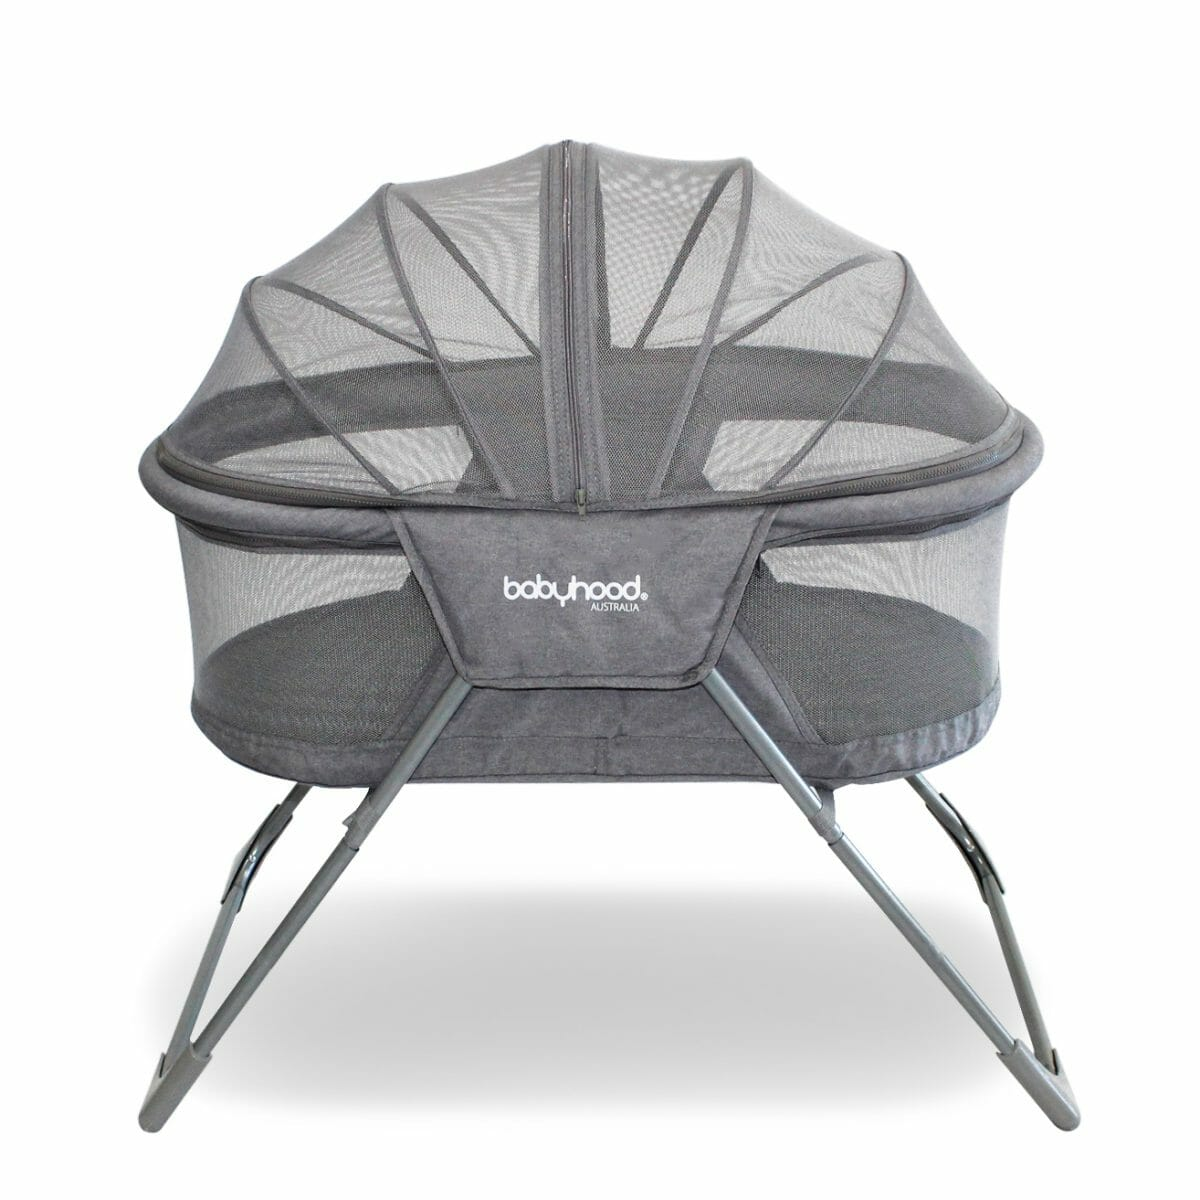 Babyhood Travel Bassinet Side